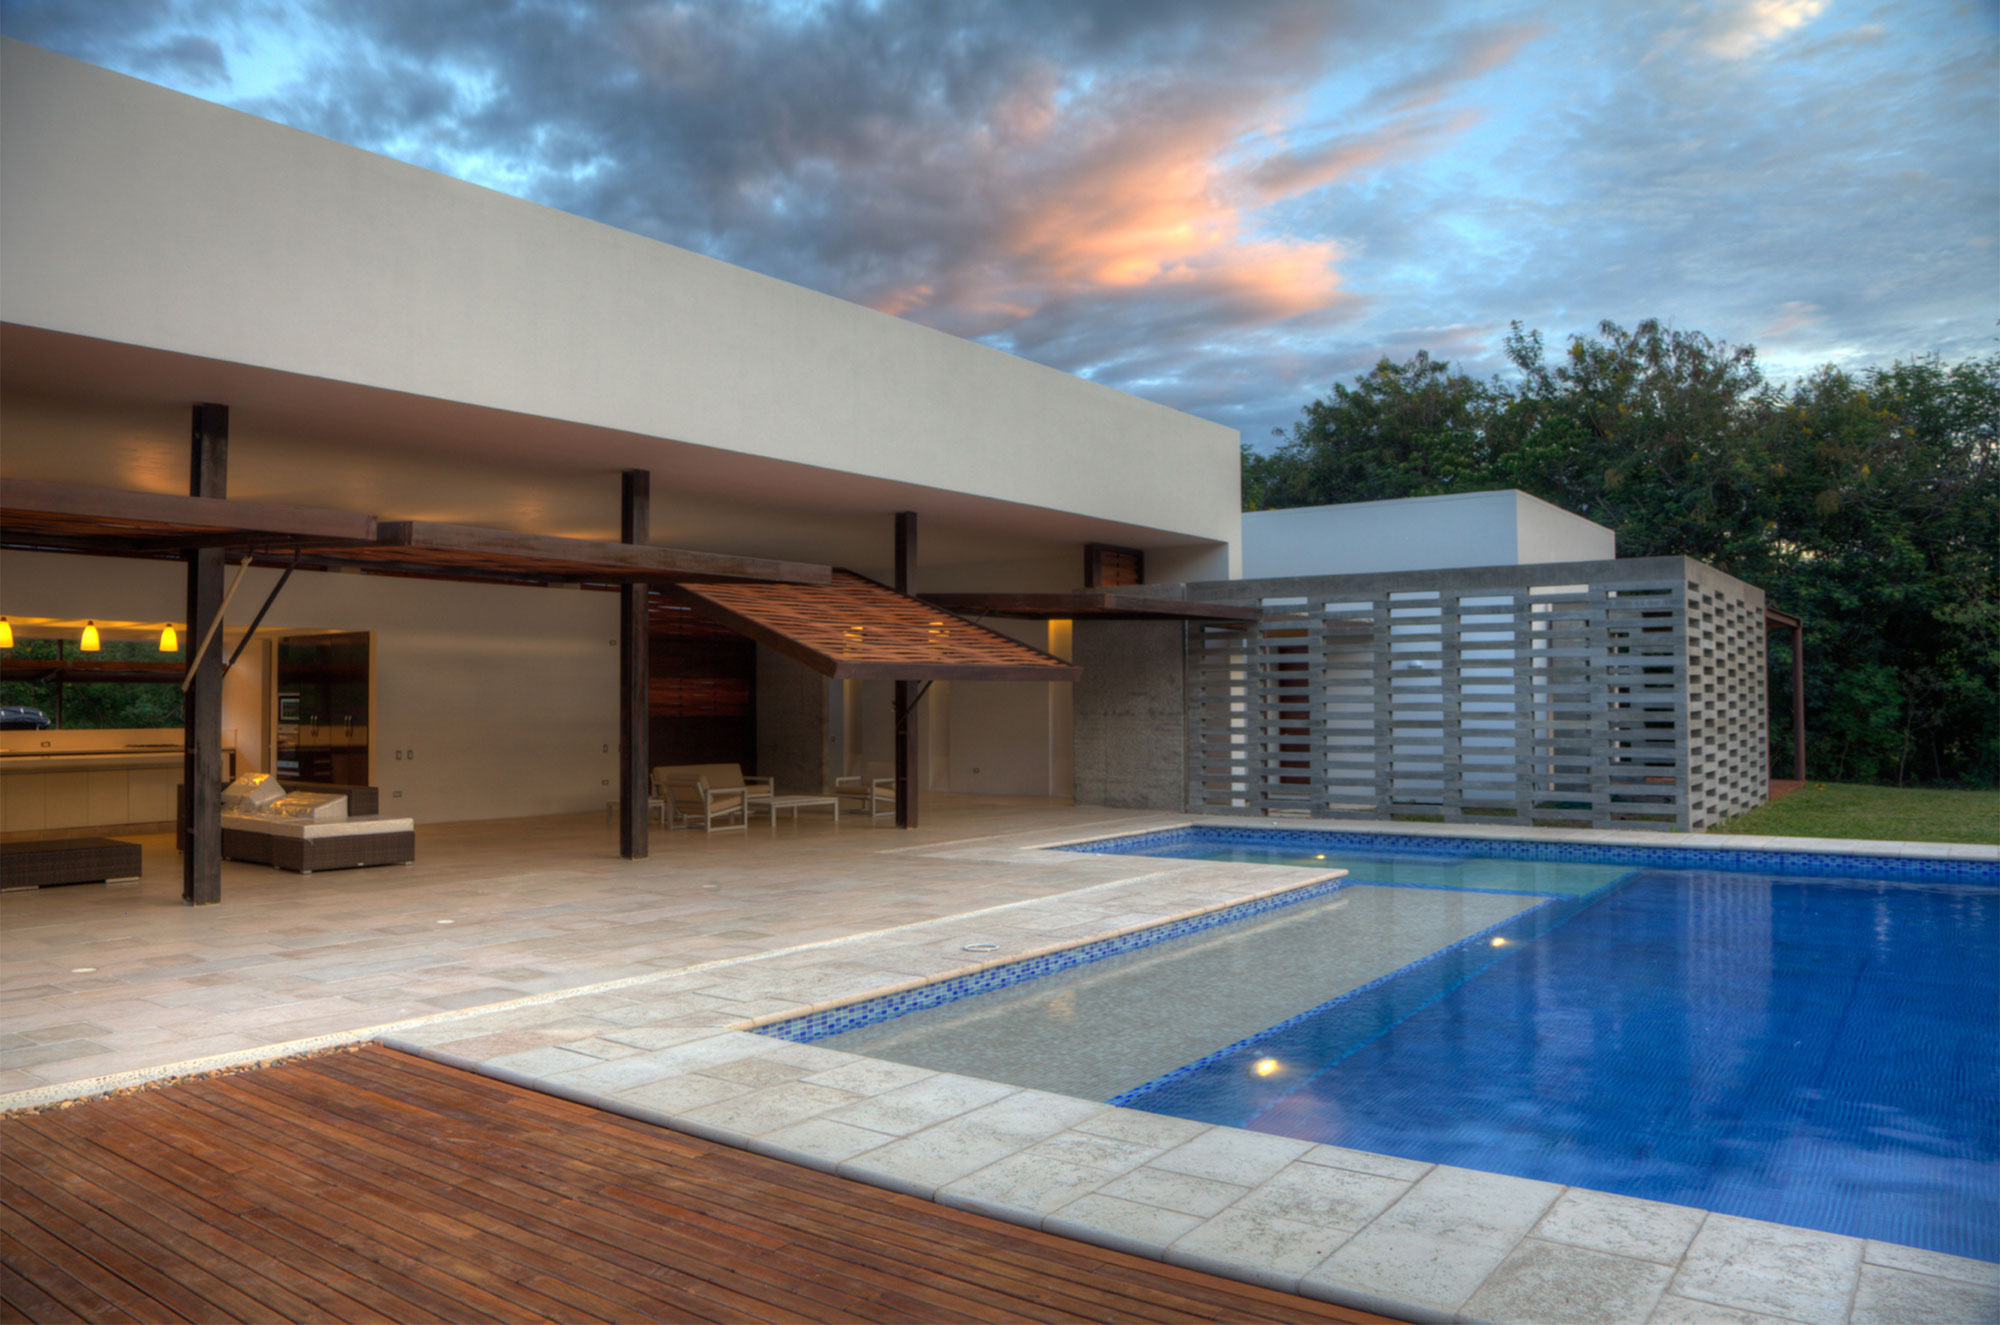 House 60 by de la carrera cavanzo arquitectura for Arquitectura and design